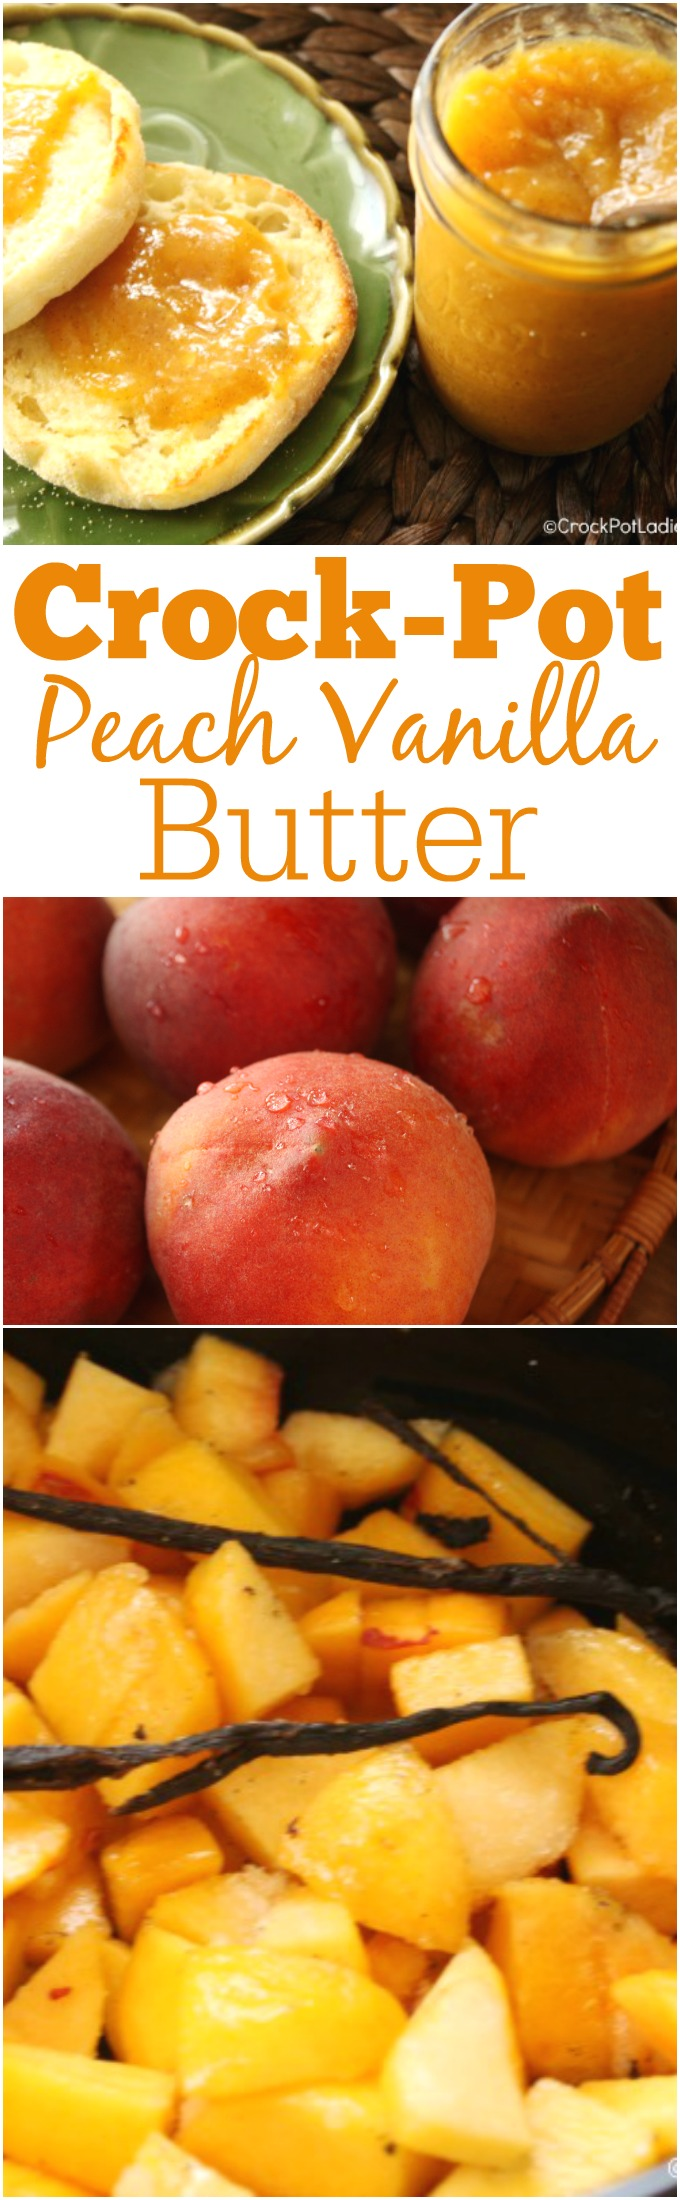 Crock-Pot Peach Vanilla Butter - Take advantage of fresh seasonal peaches and put some up for later with this delicious crock-pot peach vanilla butter recipe! Spread on toast or an English muffin or spoon over yogurt and top with granola. It is AMAZING! #Recipe #CrockPot #SlowCooker #Canning #Peaches